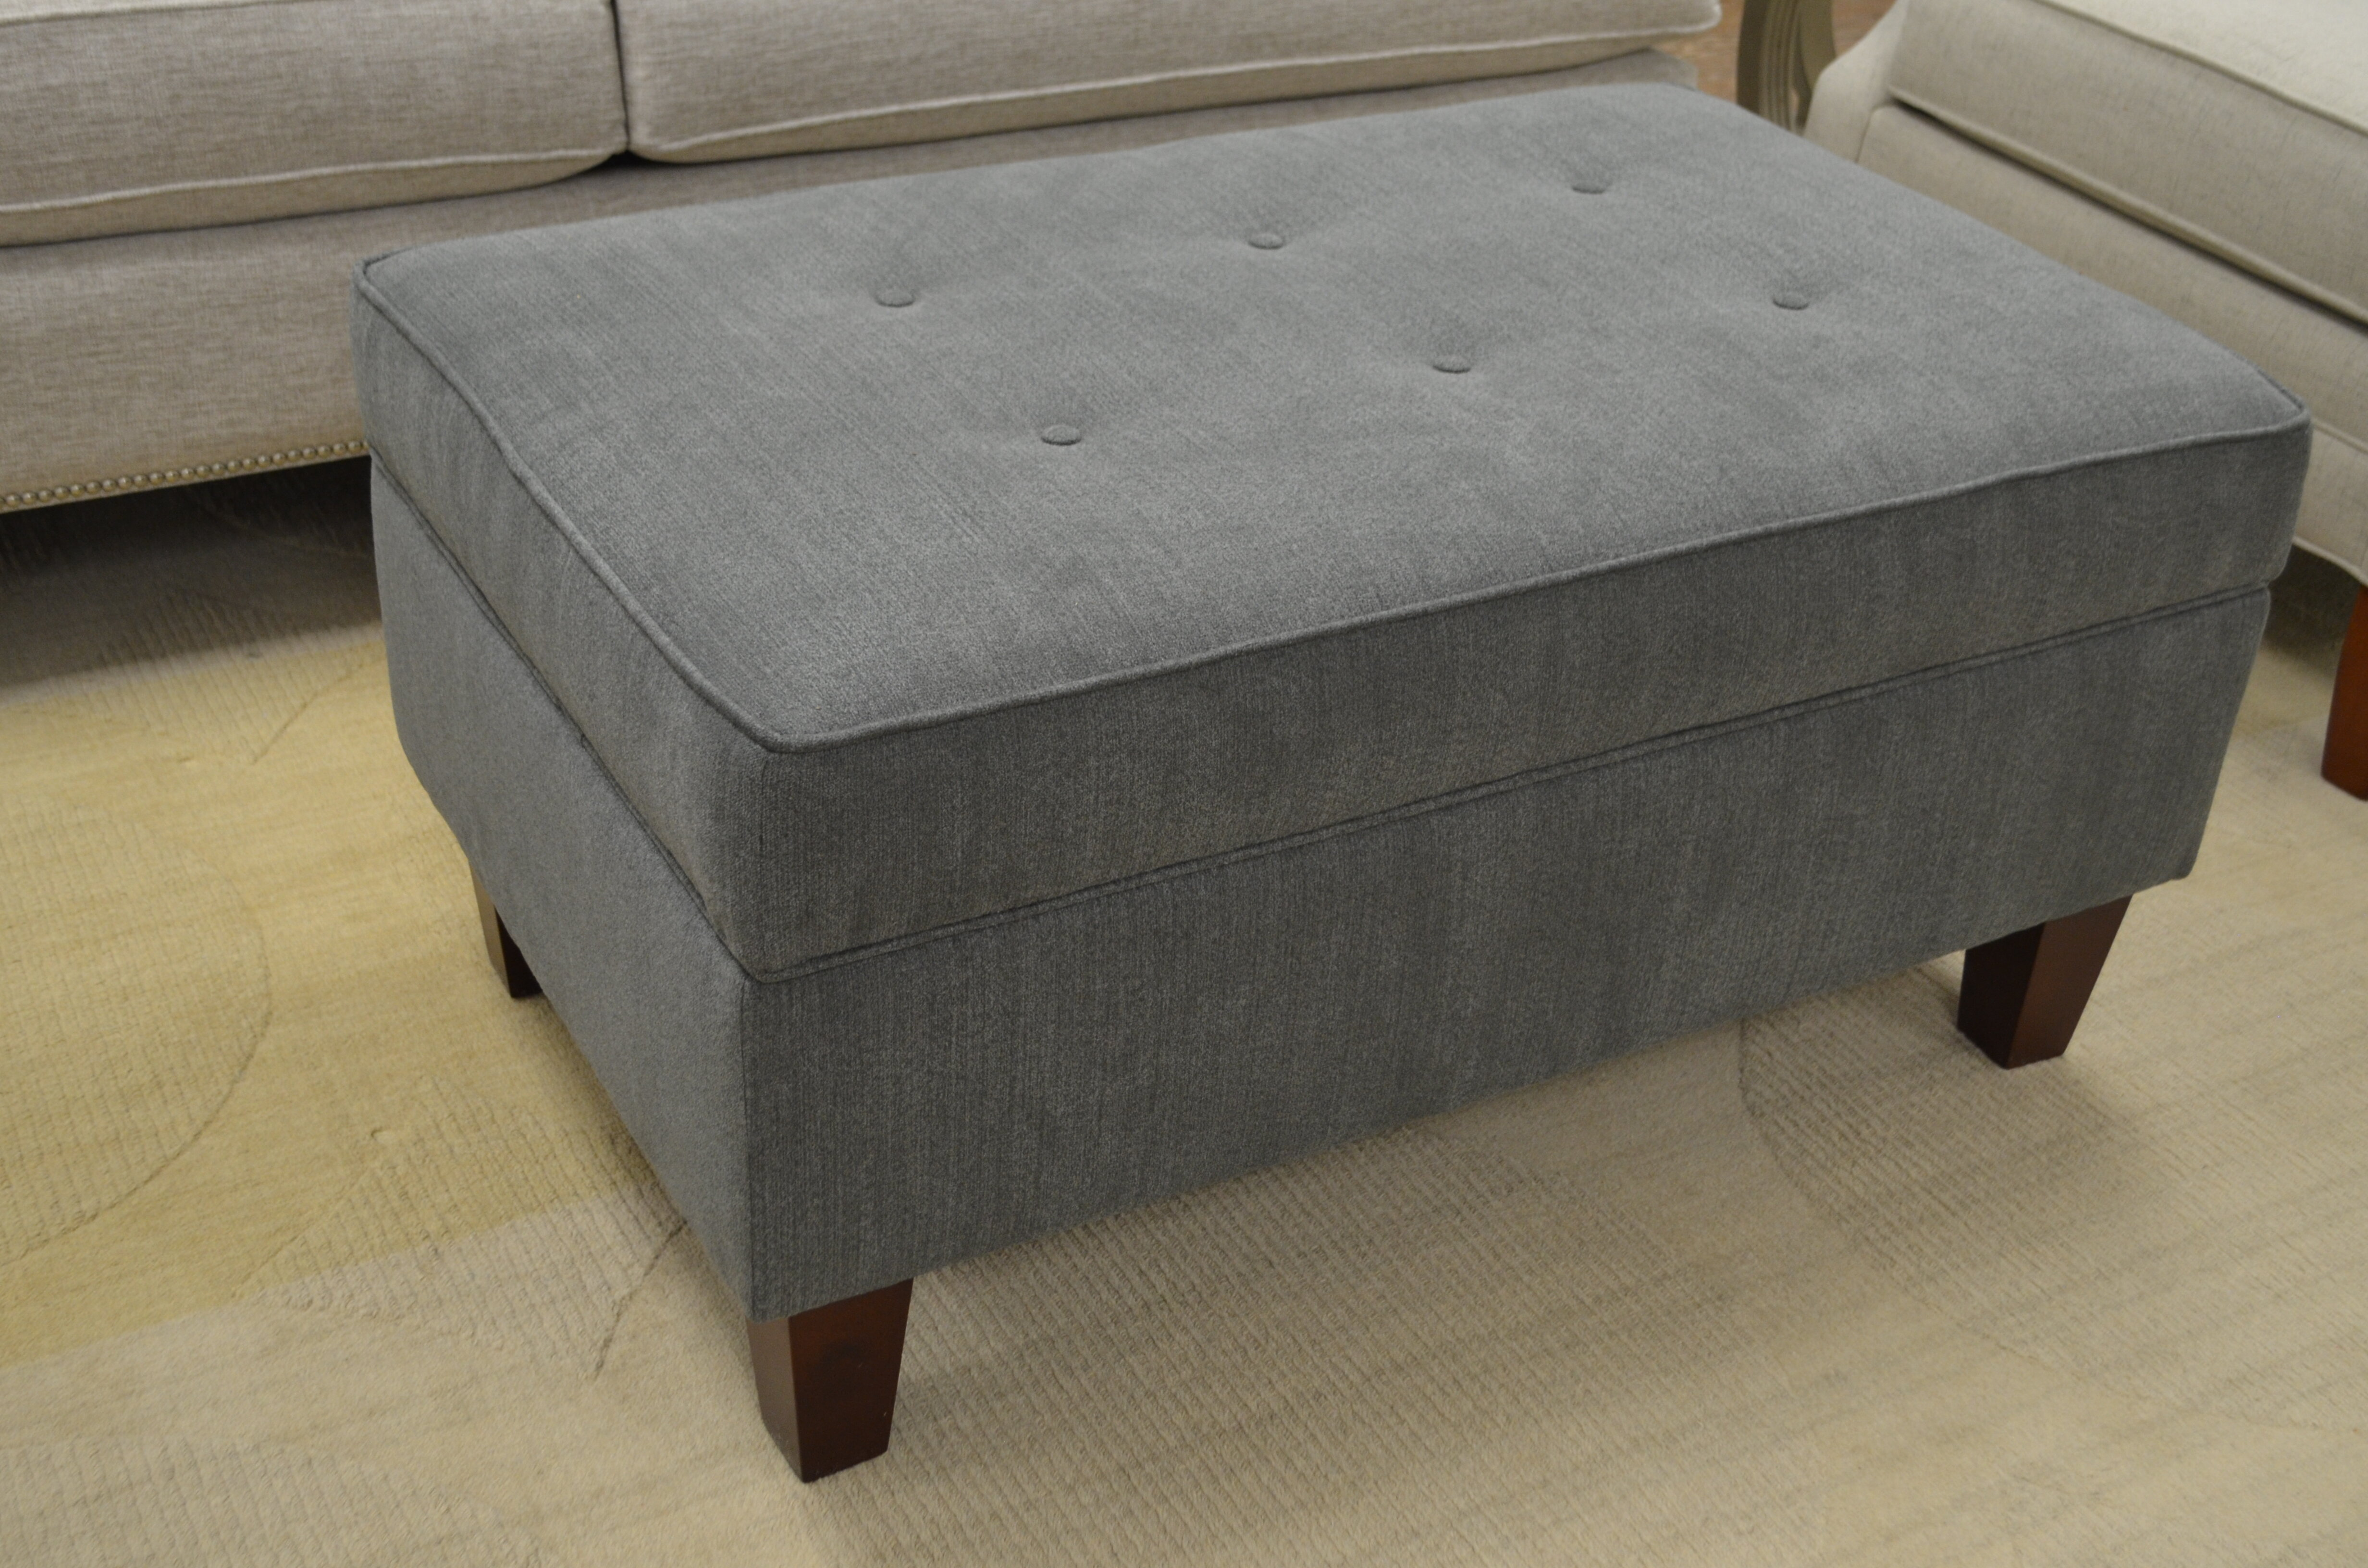 Fine Diver Tufted Storage Ottoman Andrewgaddart Wooden Chair Designs For Living Room Andrewgaddartcom